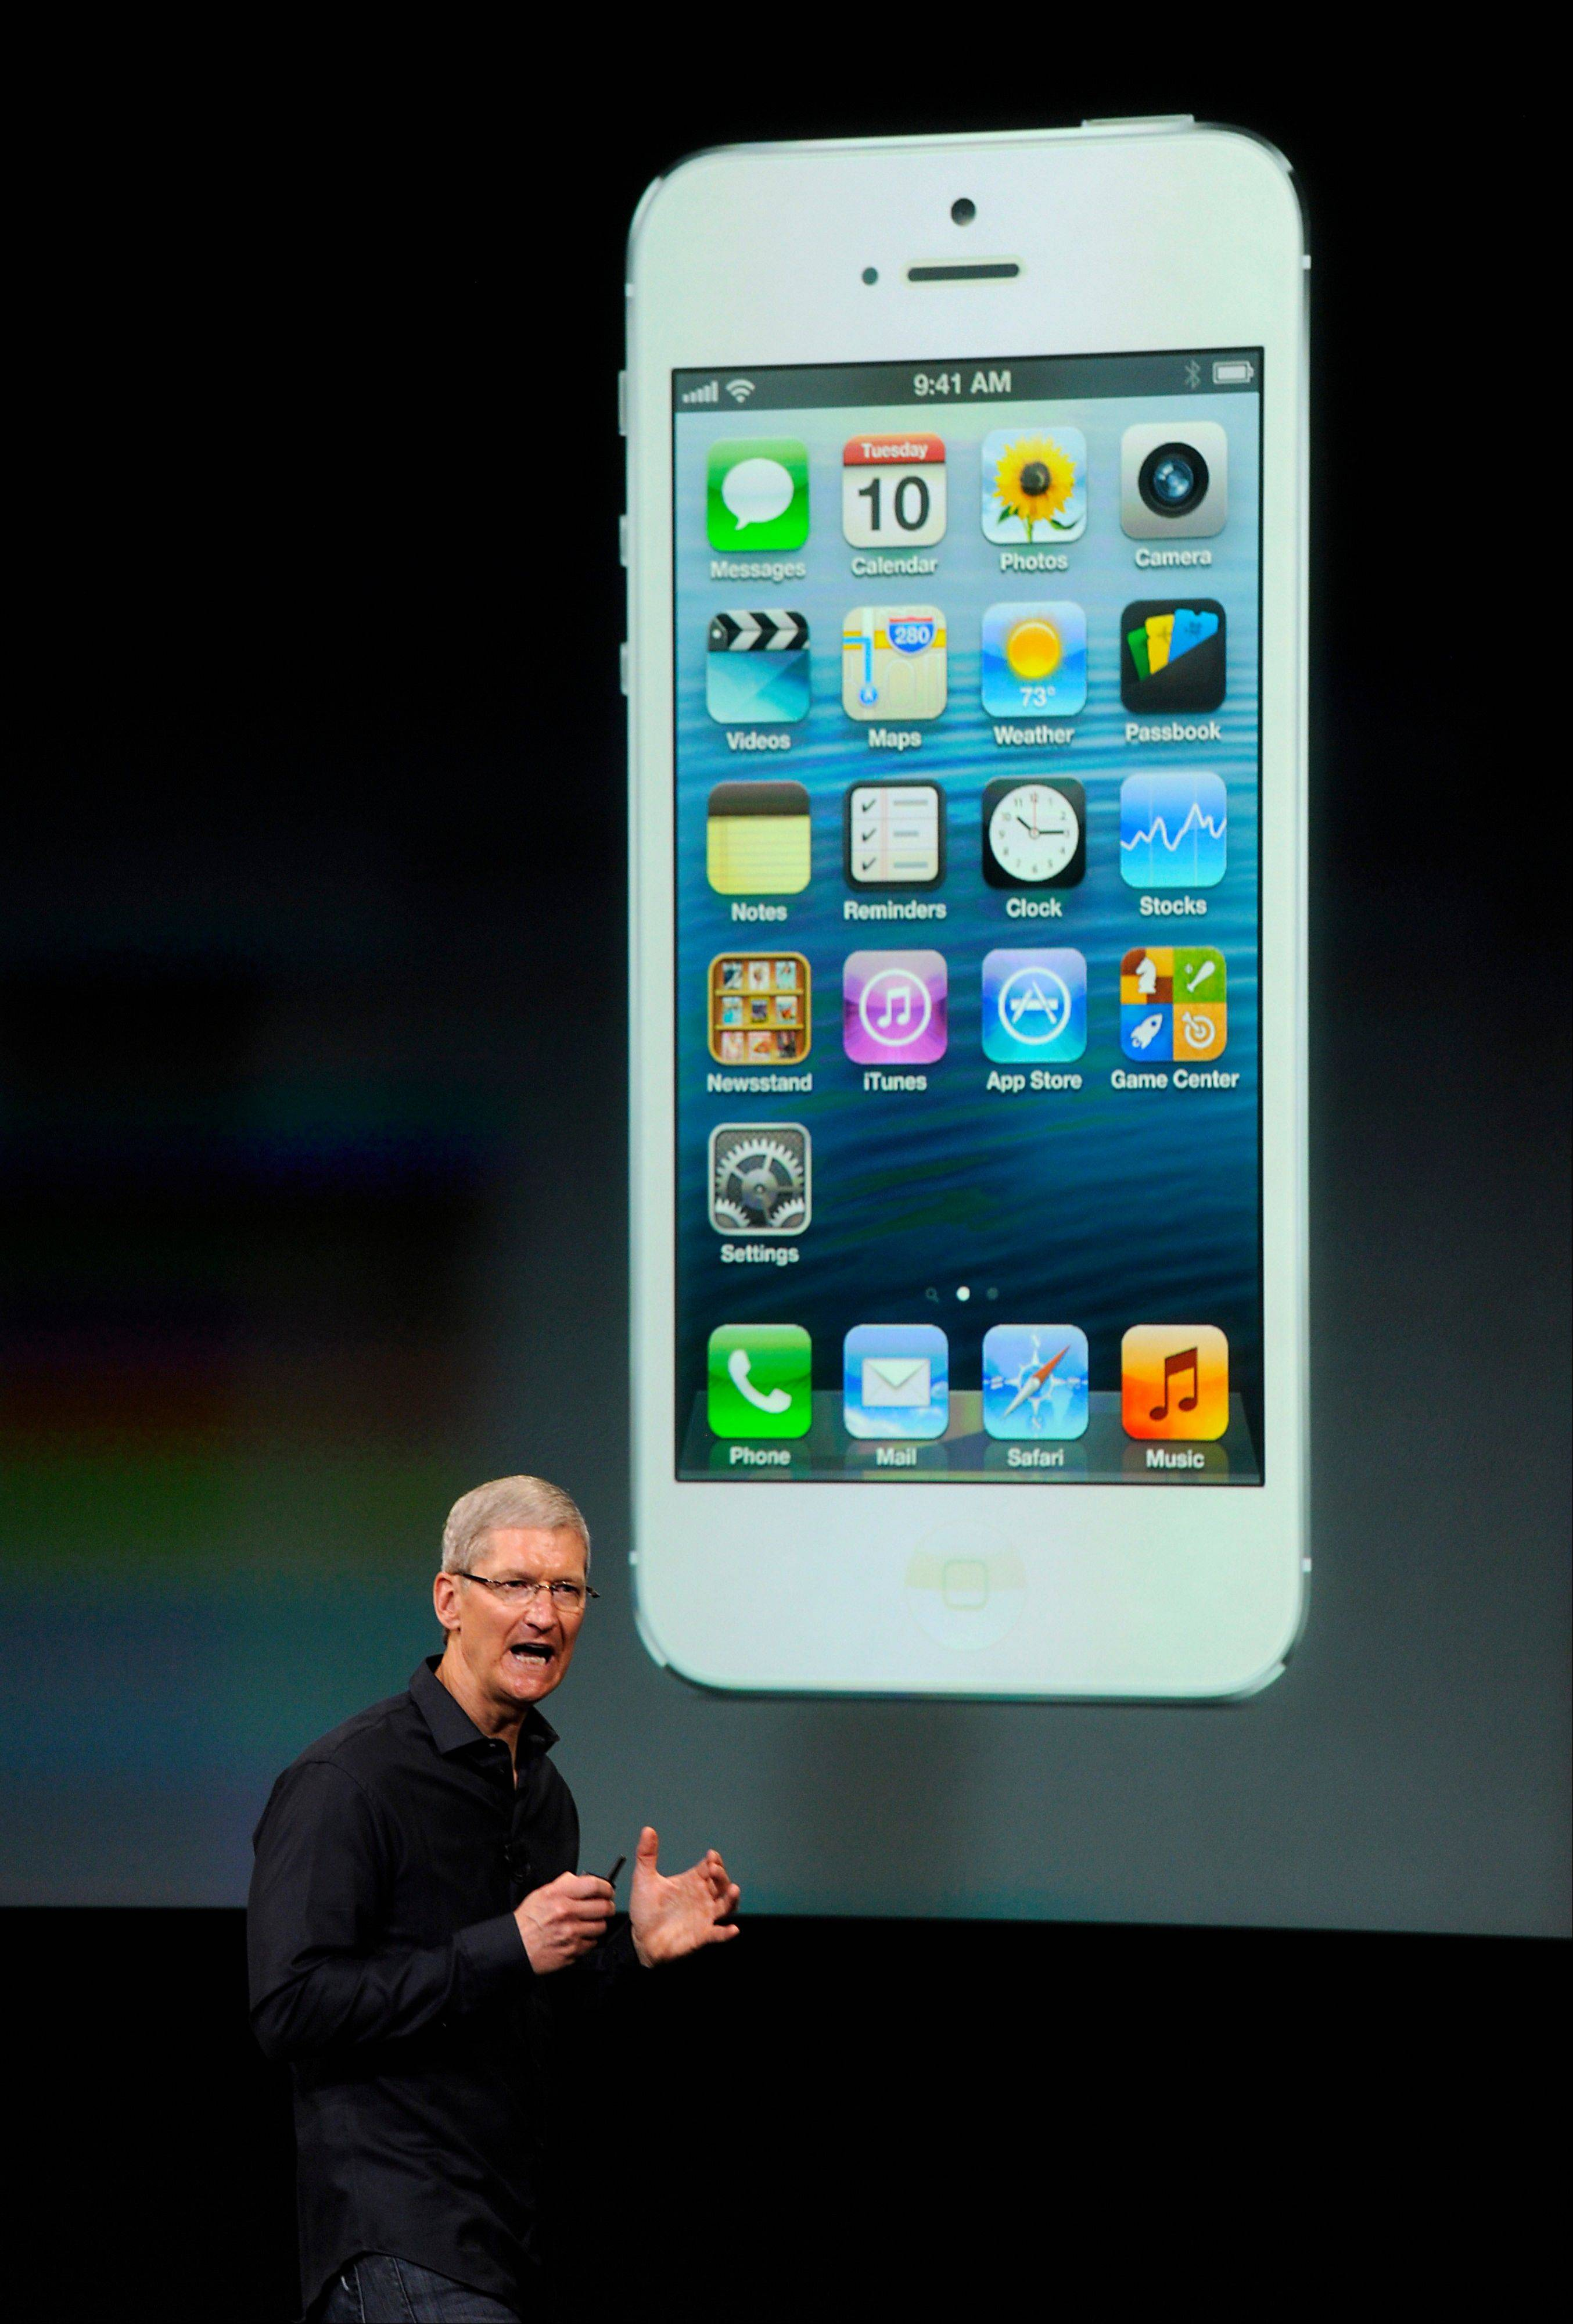 Tim Cook, chief executive officer of Apple Inc., speaks during a product announcement in California, on Tuesday, Sept. 10, 2013. Apple Inc. announced two new iPhones including one with lower prices and more color options, in a strategy shift by Cook to reach a broader range of customers around the world.